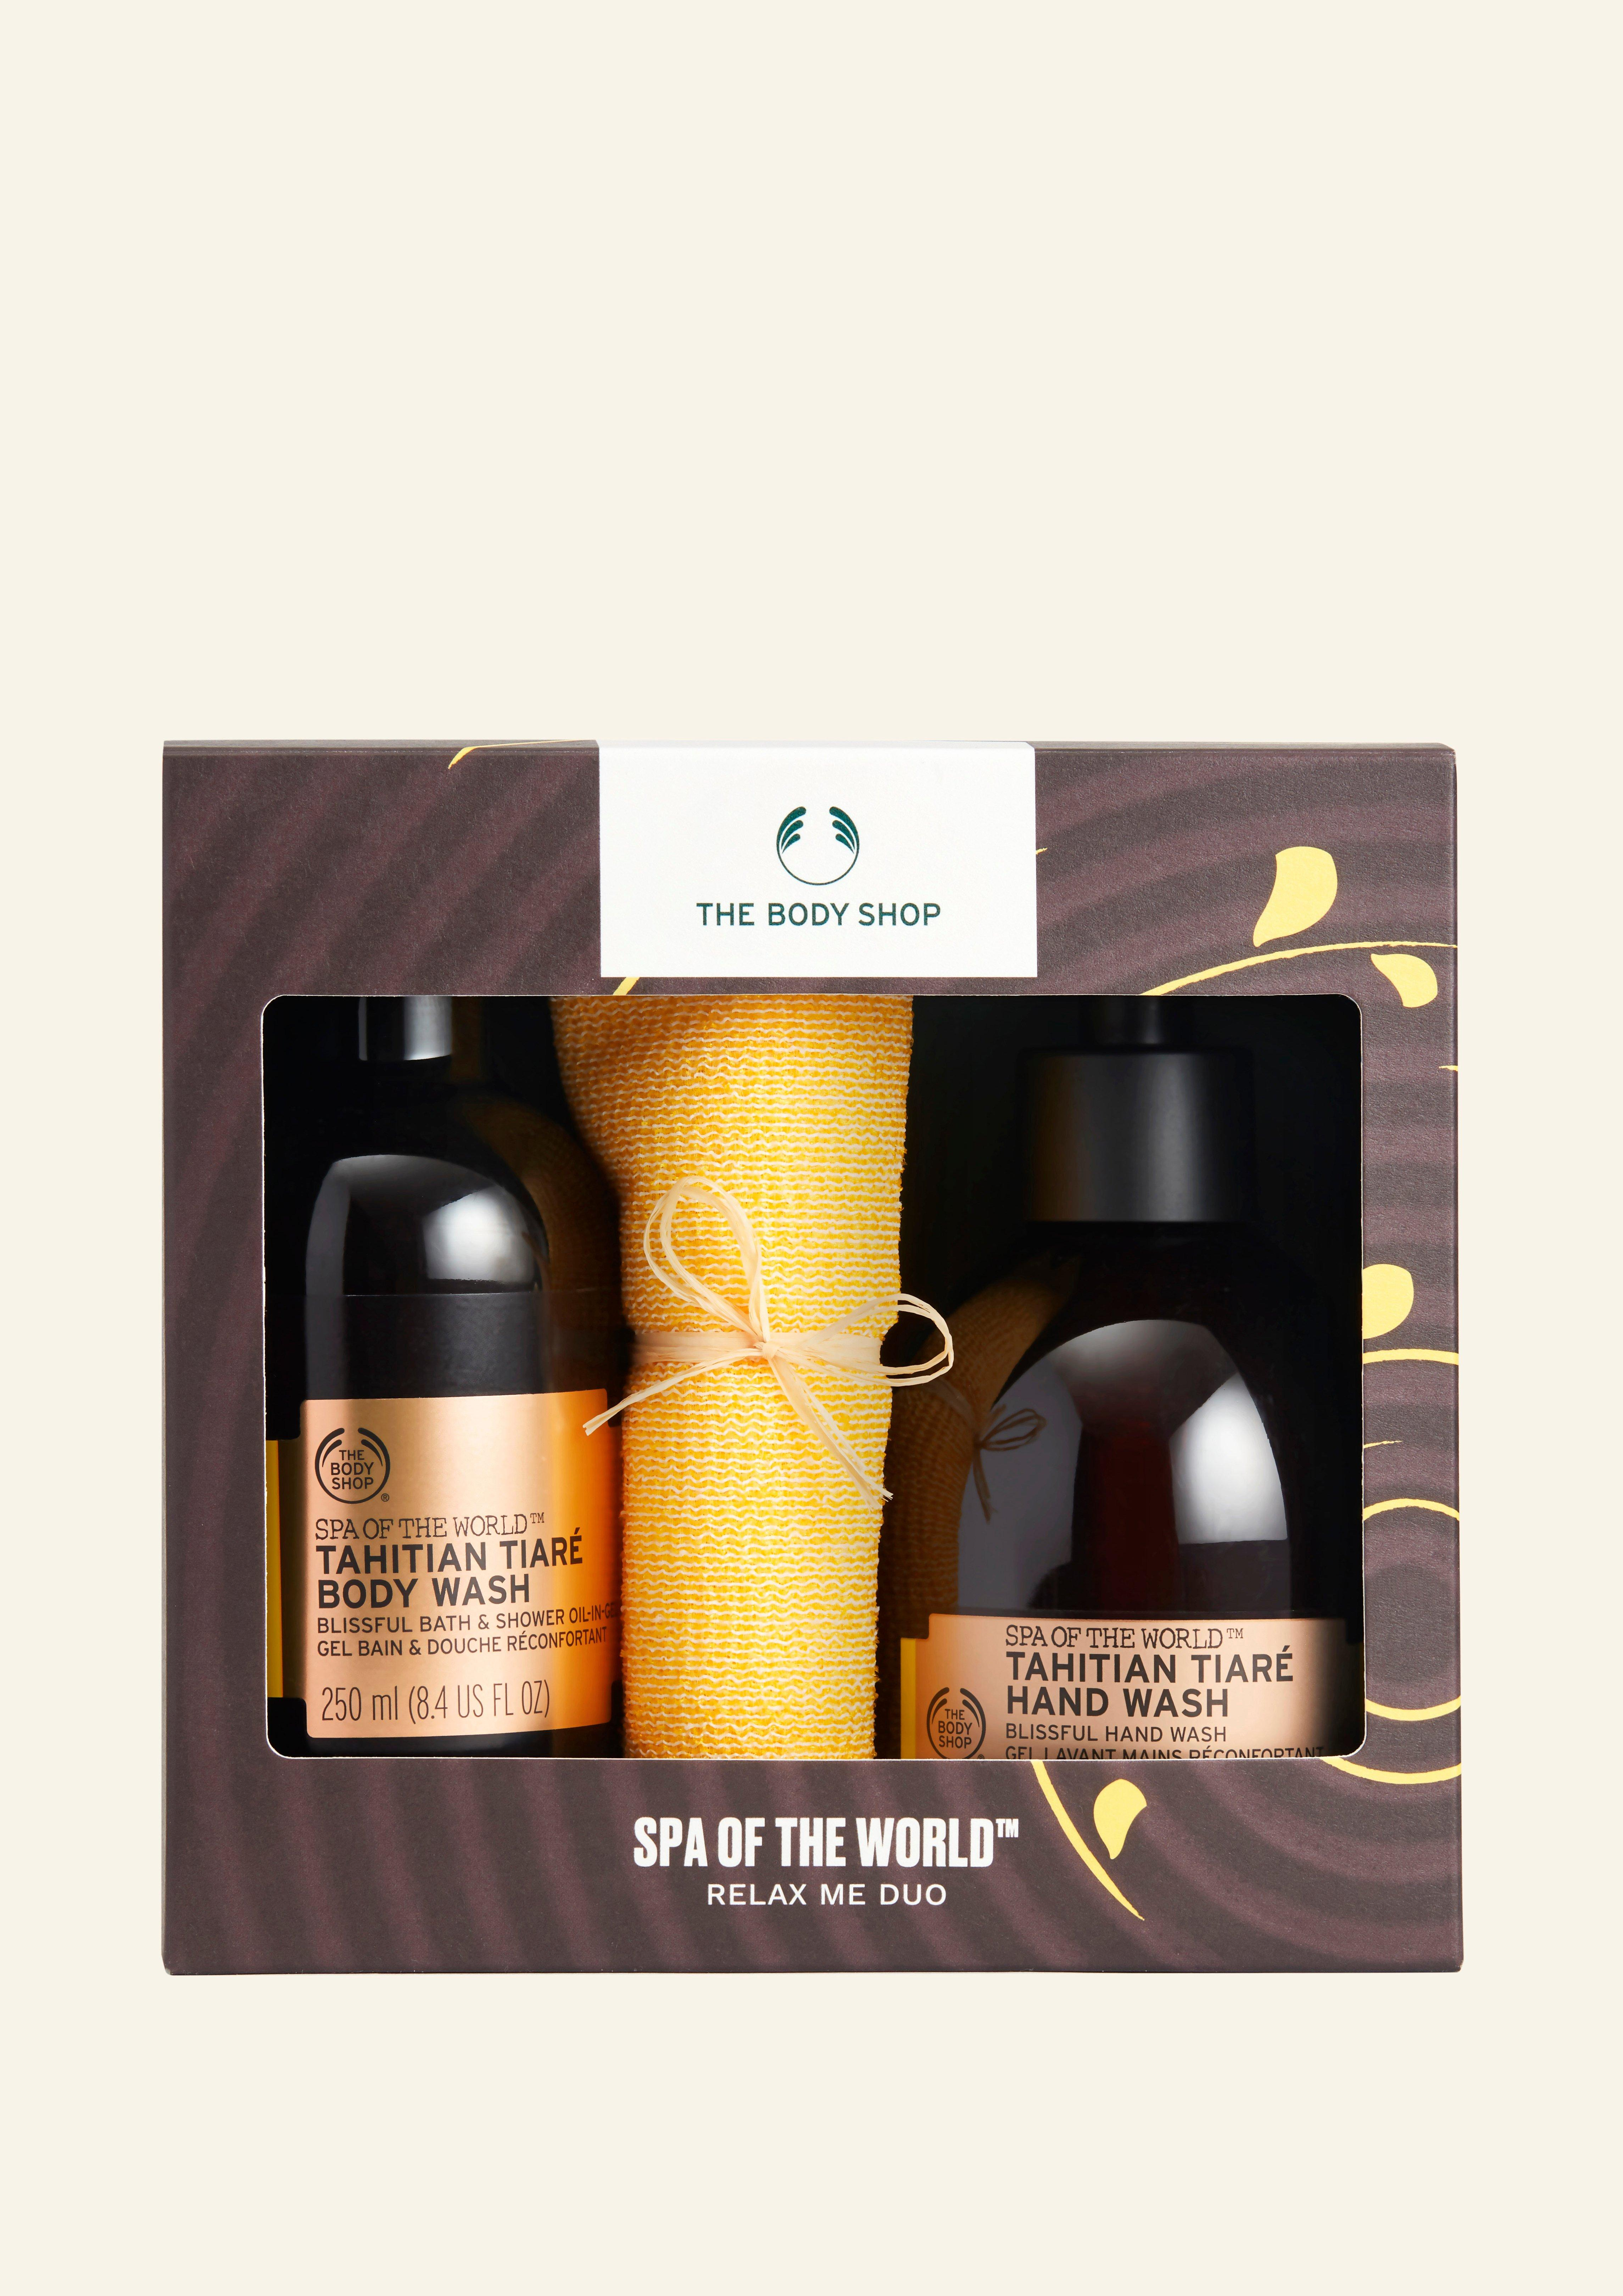 Spa of the World™ Relax Me Duo